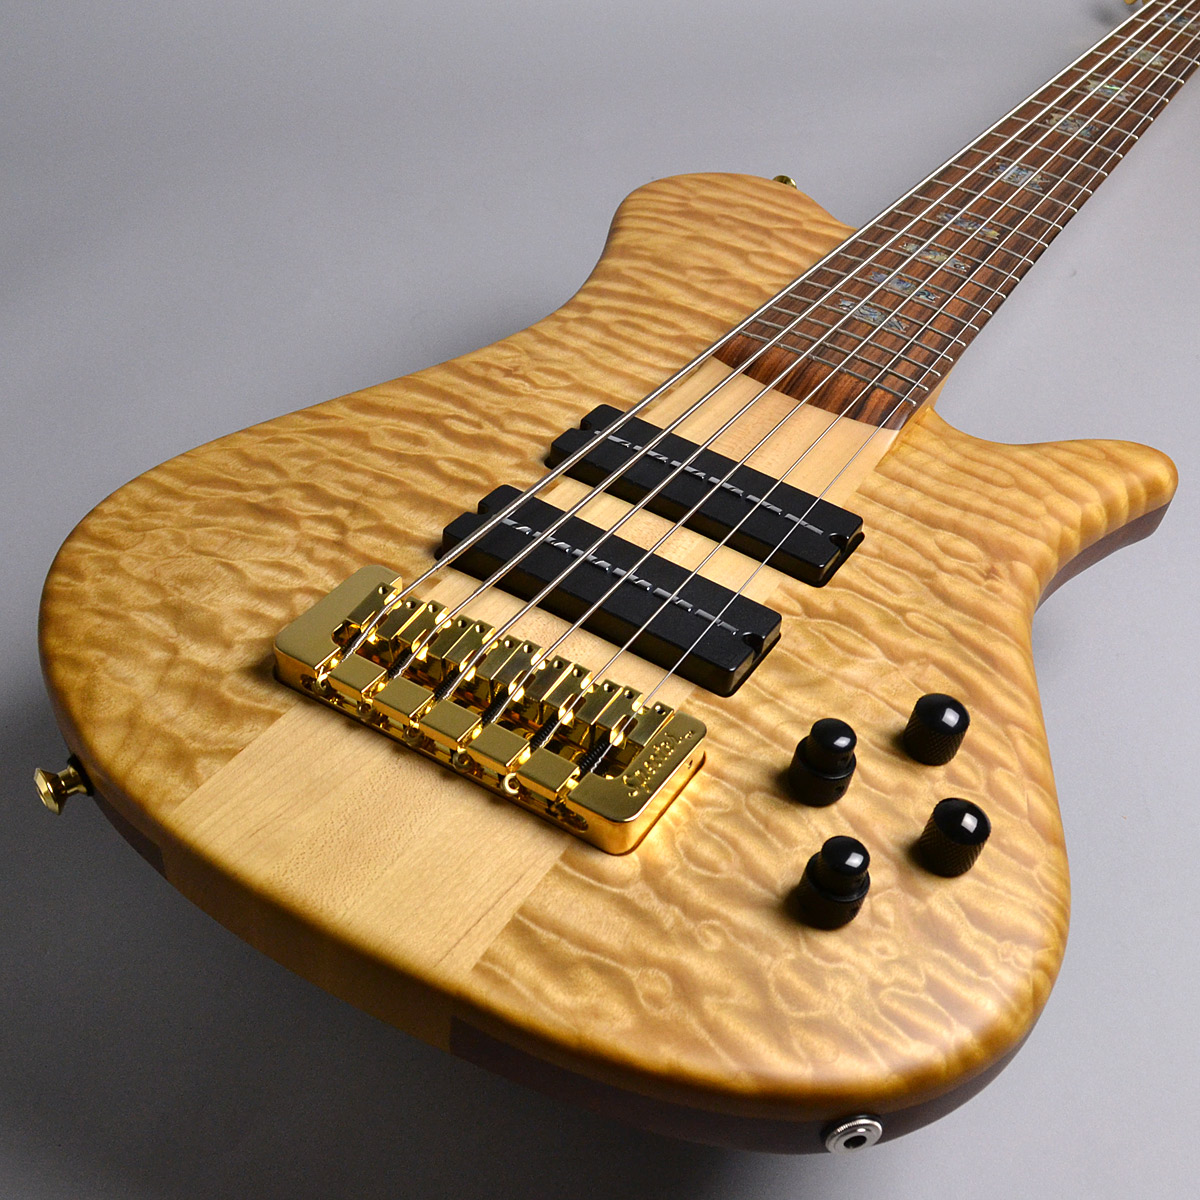 USA NS6XL SC 5A Quilted Maple Topのケース・その他画像